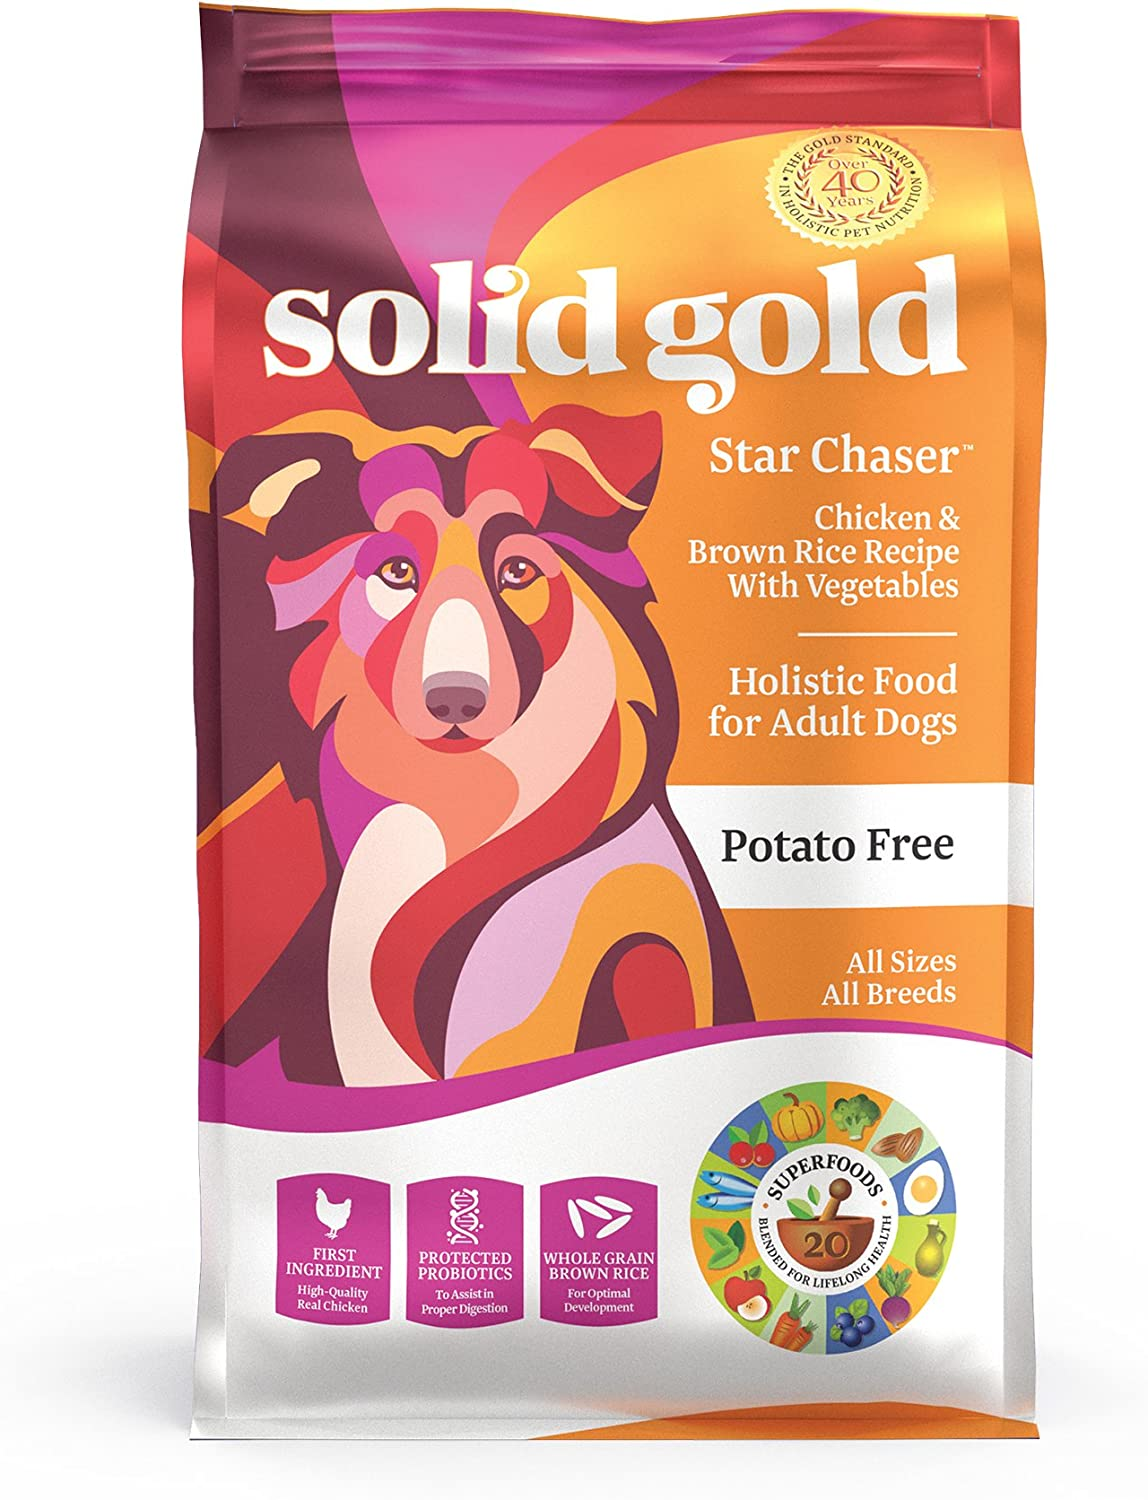 Solid Gold - Star Chaser - Chicken, Brown Rice with Vegetables - Natural Whole Grains - Holistic - Potato Free - Dog Food for All Life Stages